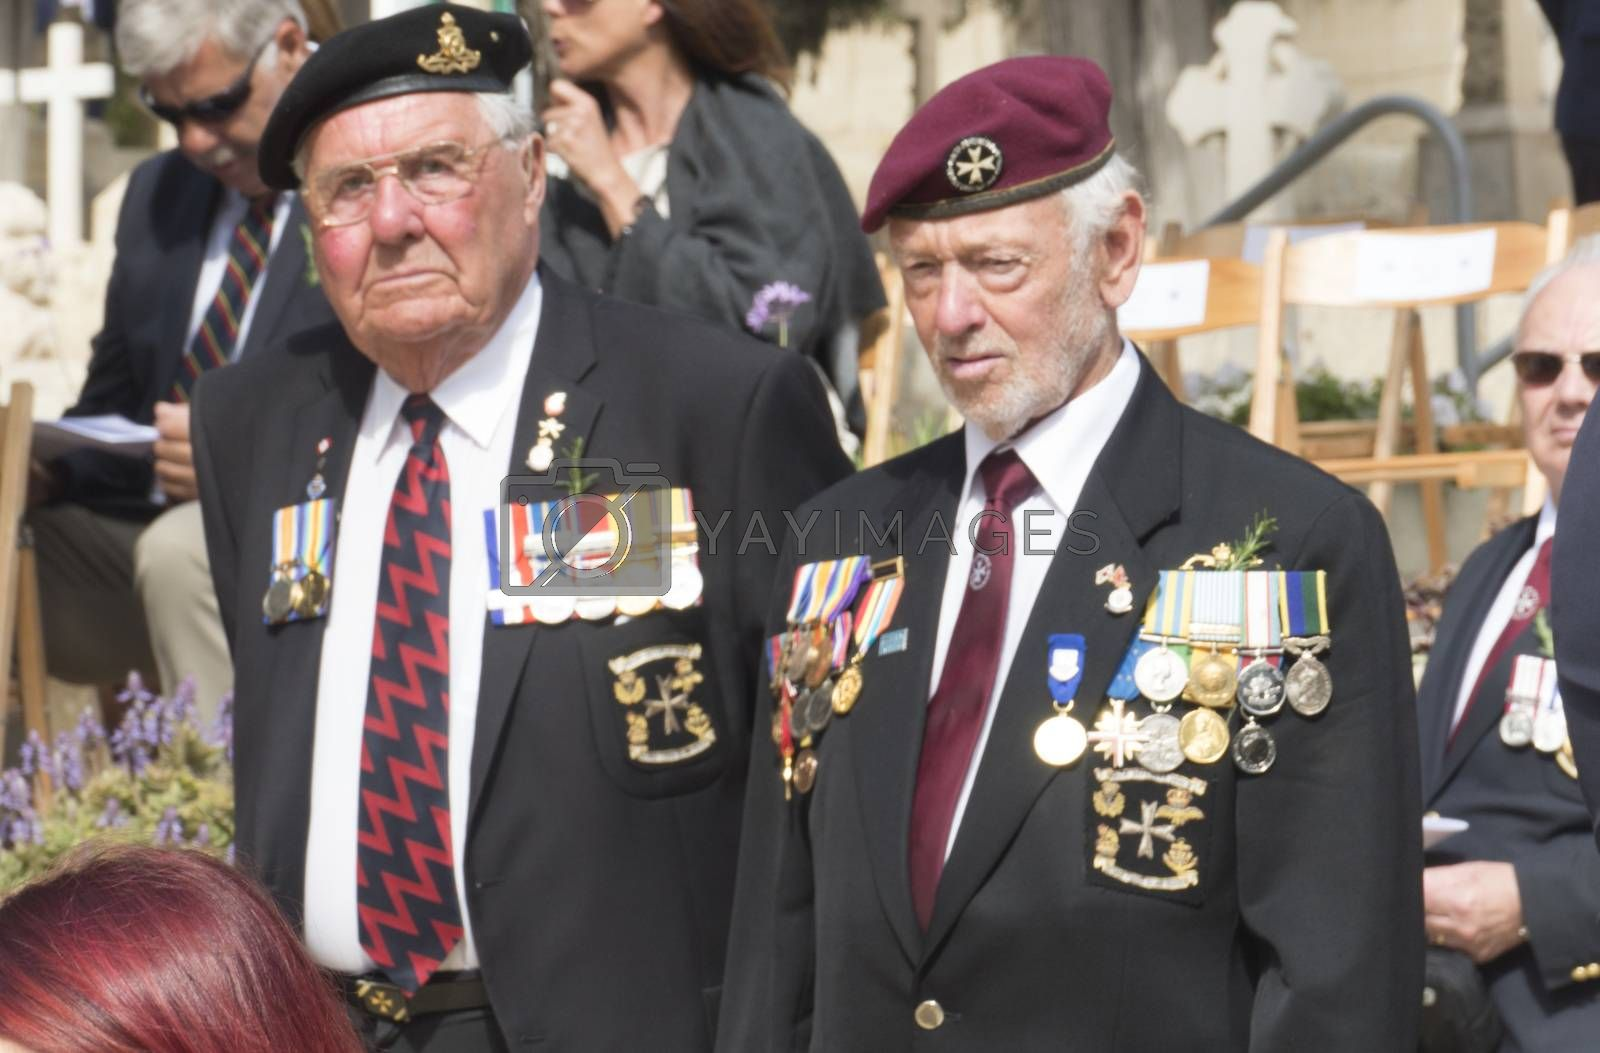 MALTA, Marsa: Veterans attend the ceremony for Anzac Day on April 25, 2016, in Malta.The Wreath laying ceremony takes place on the anniversary of the first major military action fought by Australian and New Zealand forces during World War I. Thousands of woundedAustralians, New Zealanders, Canadians and English were sent to the tiny Mediterranean island for care during theGallipolicampaign. ANZAC stands for Australian and New Zealand Army Corps.